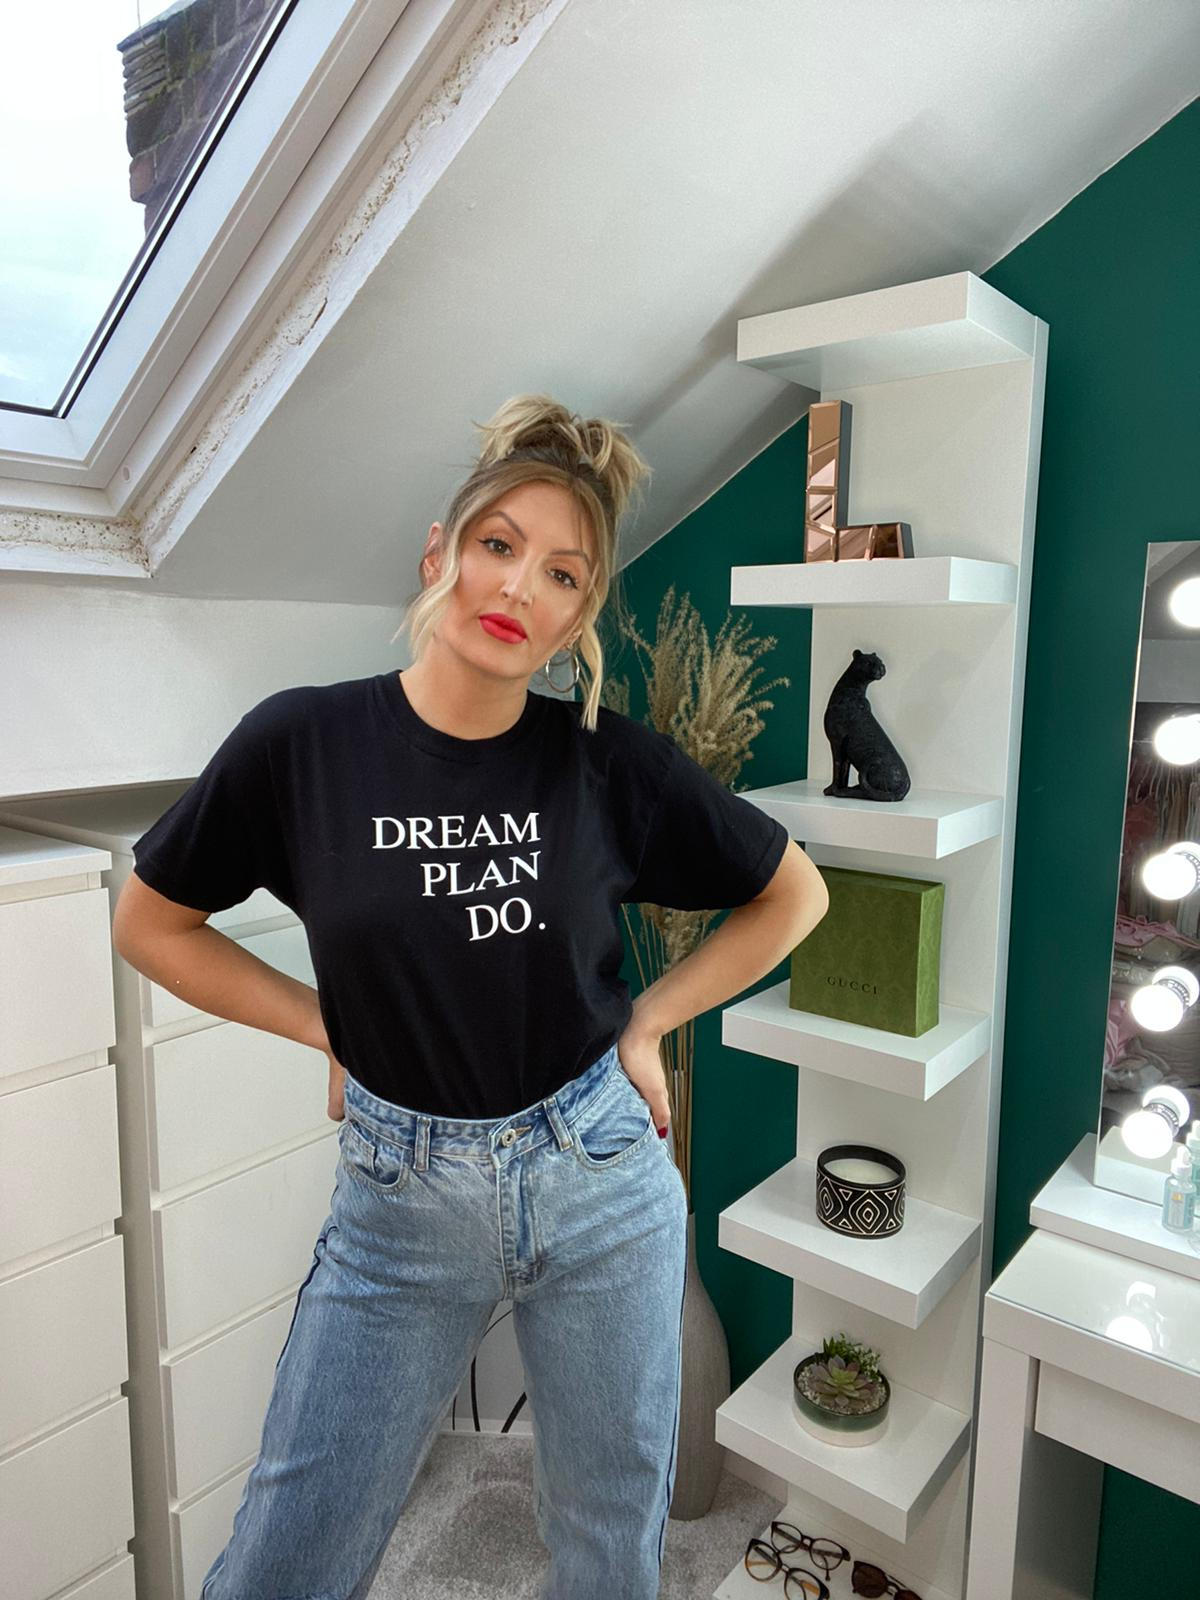 Dream Plan Do Black Slogan Tshirt